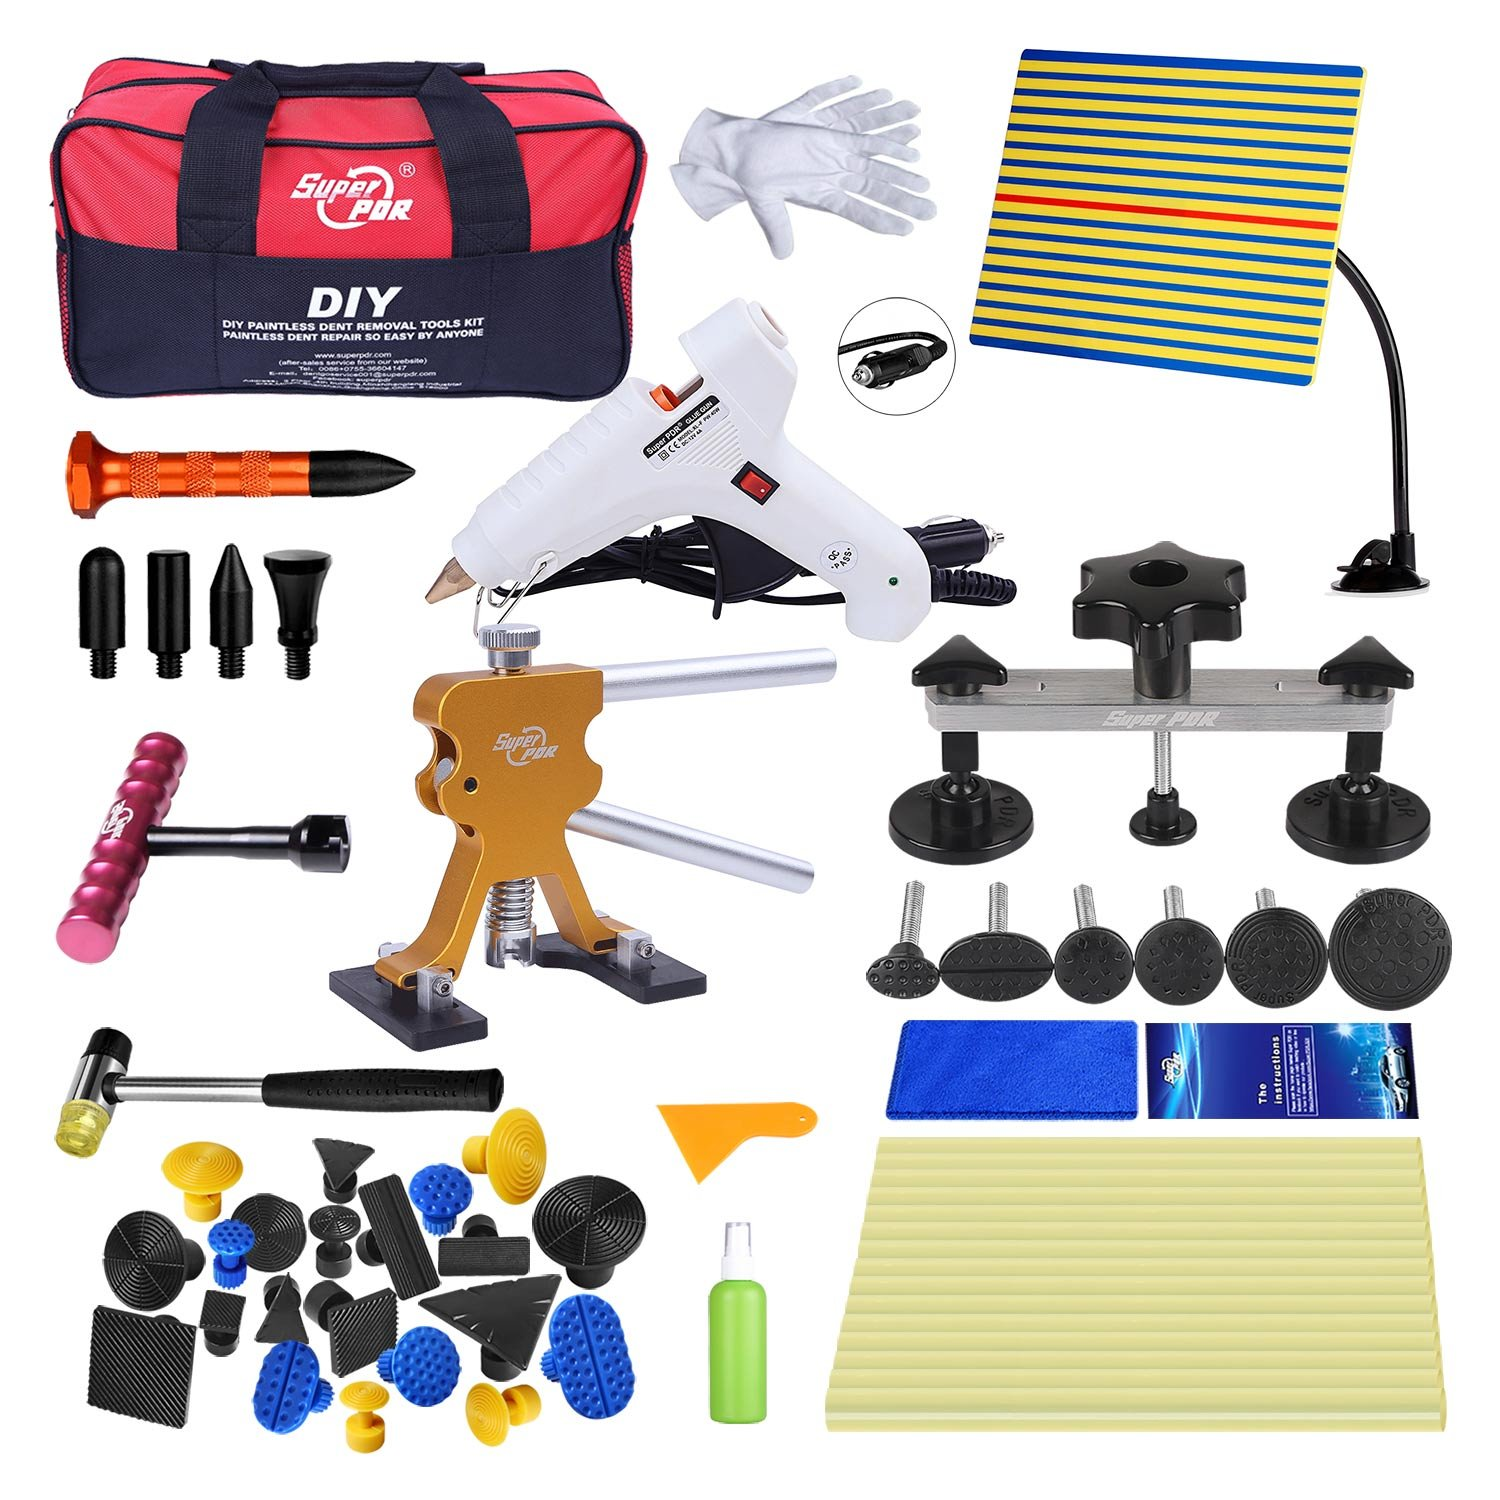 Super PDR 45 pcs PDR Tool Set Automobile Car Body Paintless Dent Repair Remover Tools Kit Hail Damage Repair Tools Dent Lifter Bridge Puller Glue Gun with Slide Hammer